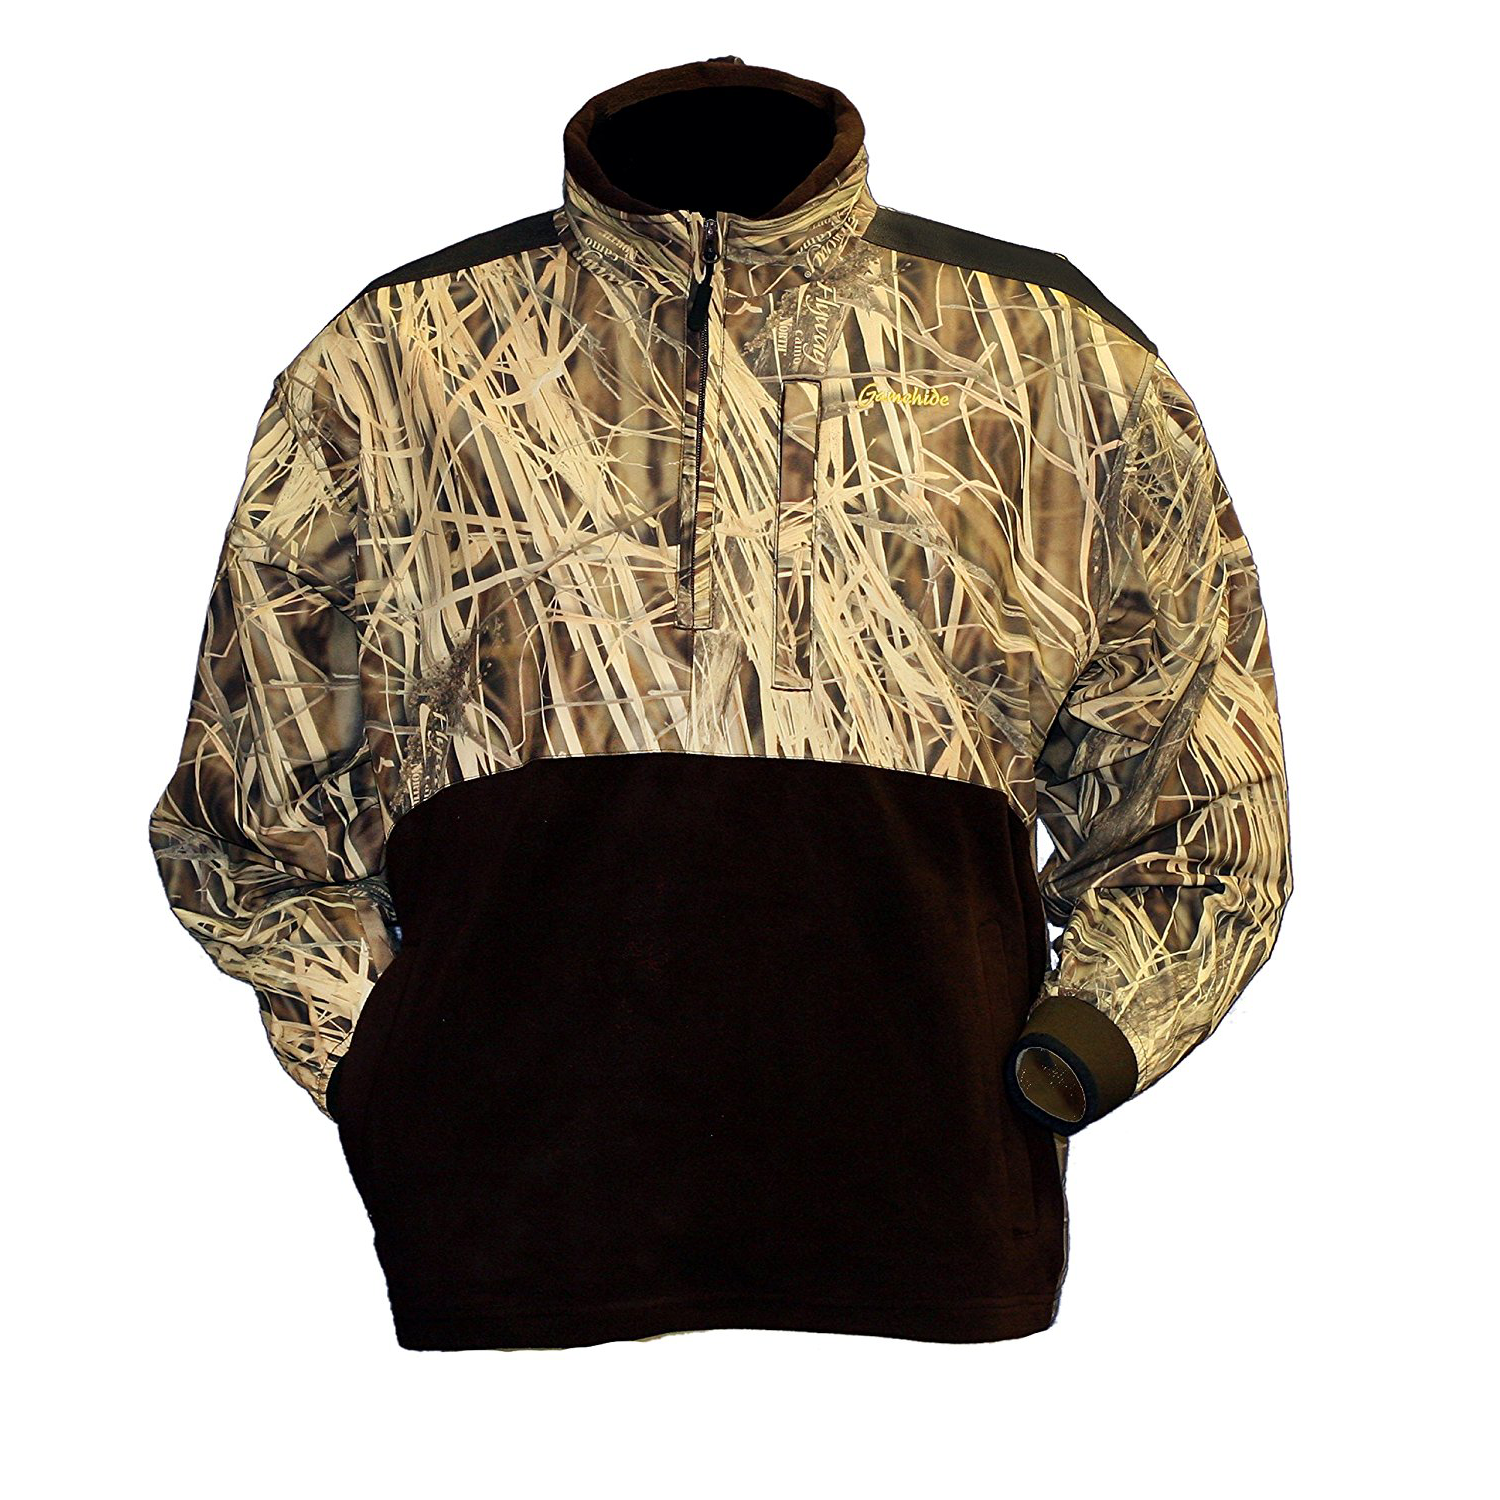 Gamehide Marsh Lord Pullover - Flyway North Camo DISCONTINUED